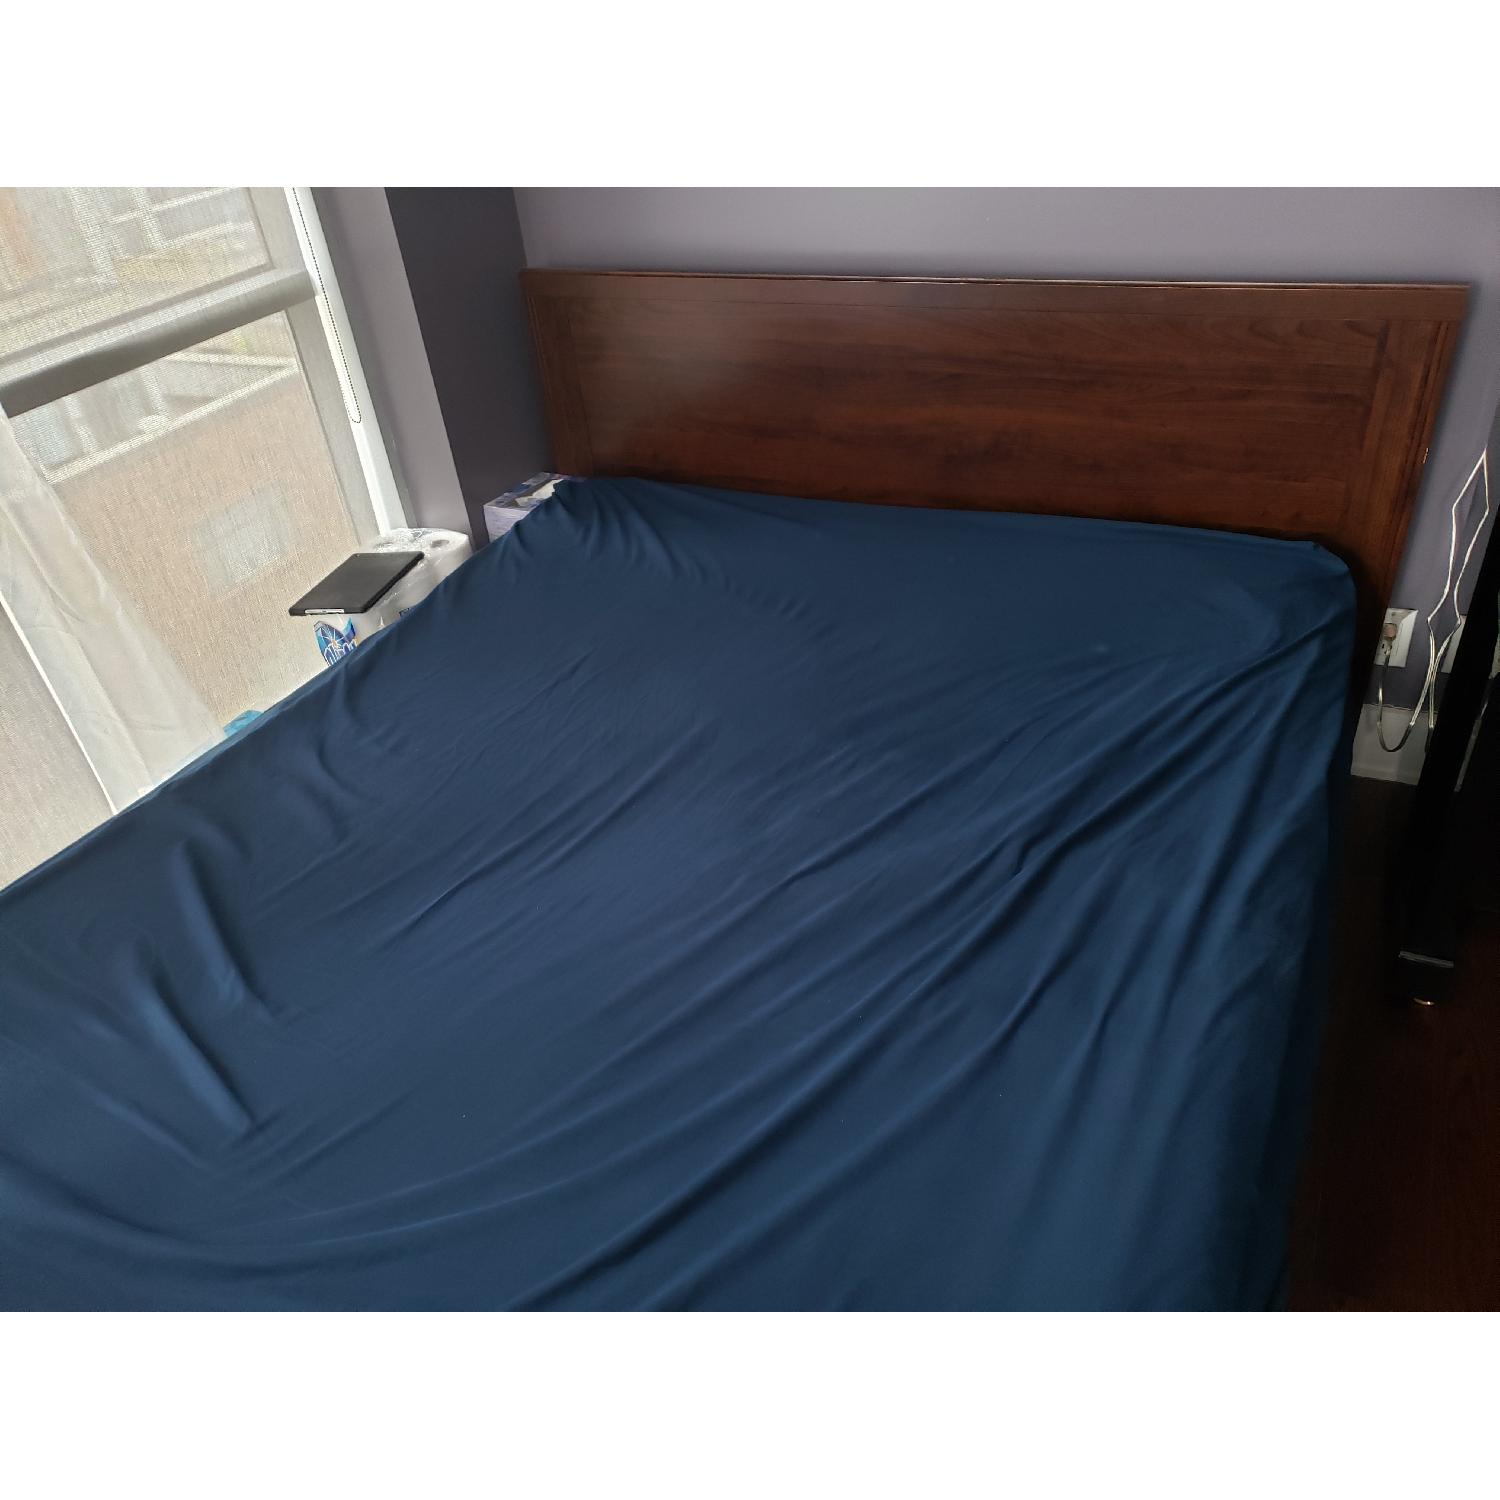 Queen Sized Bed Frame-1